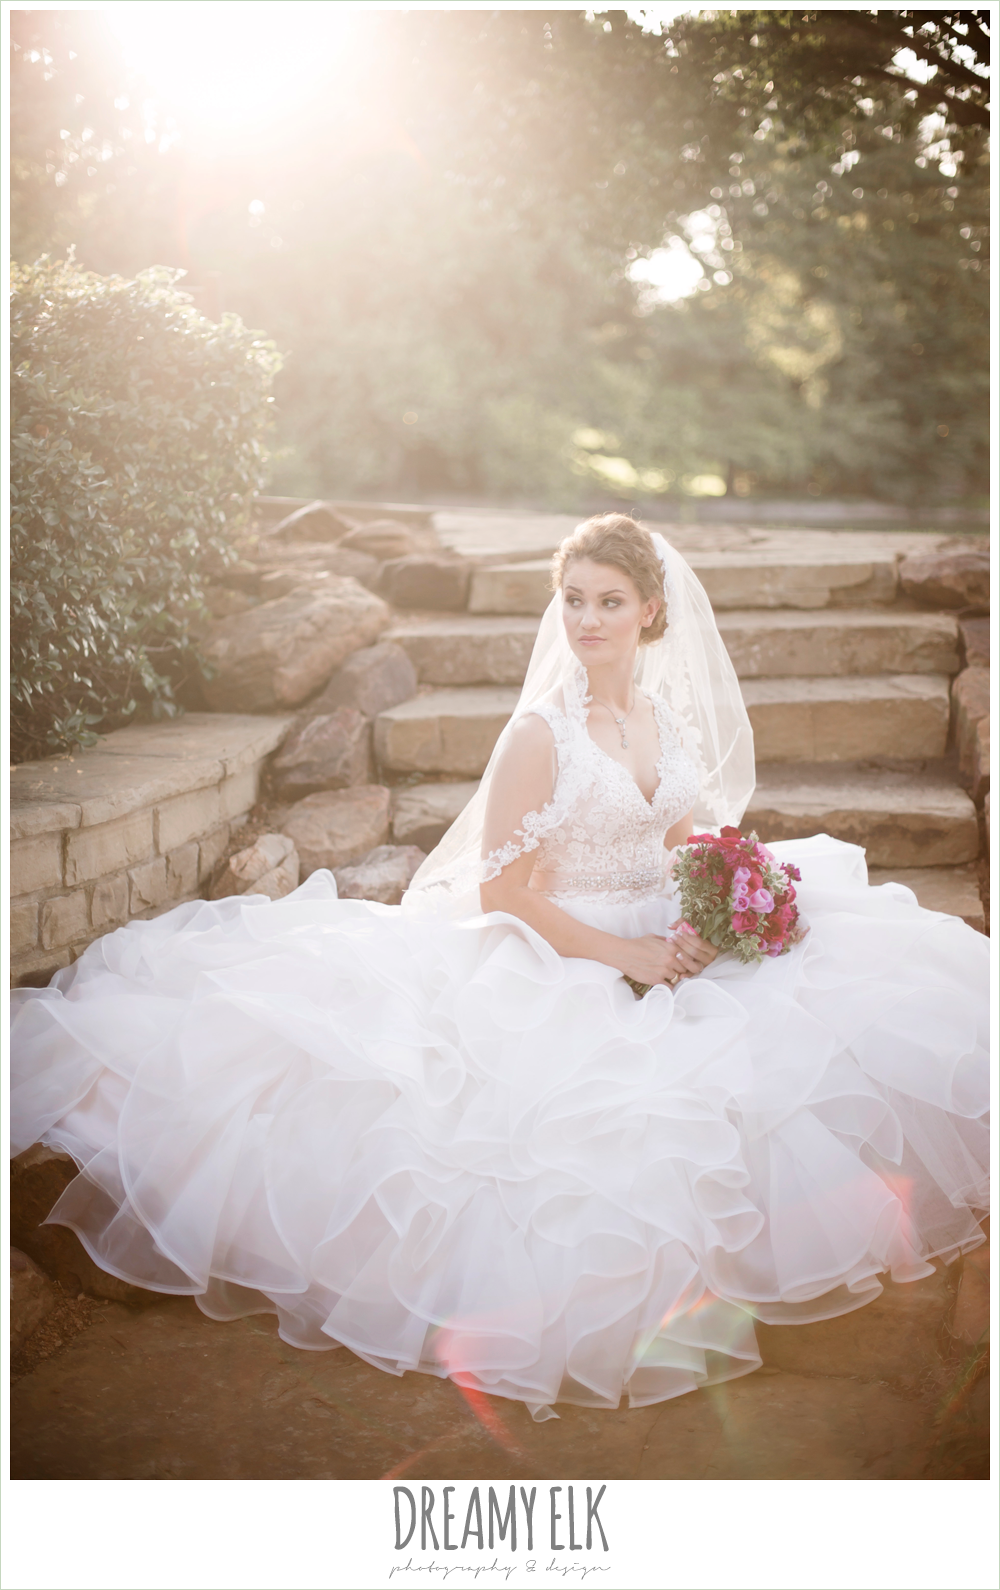 sunflare, outdoor summer bridal photo in the woods, lace bodice wedding dress with ruffles, blush wedding dress, curly hair updo, lace wedding veil, pink wedding bouquet, dallas, texas, austin wedding photographer {dreamy elk photography and design}